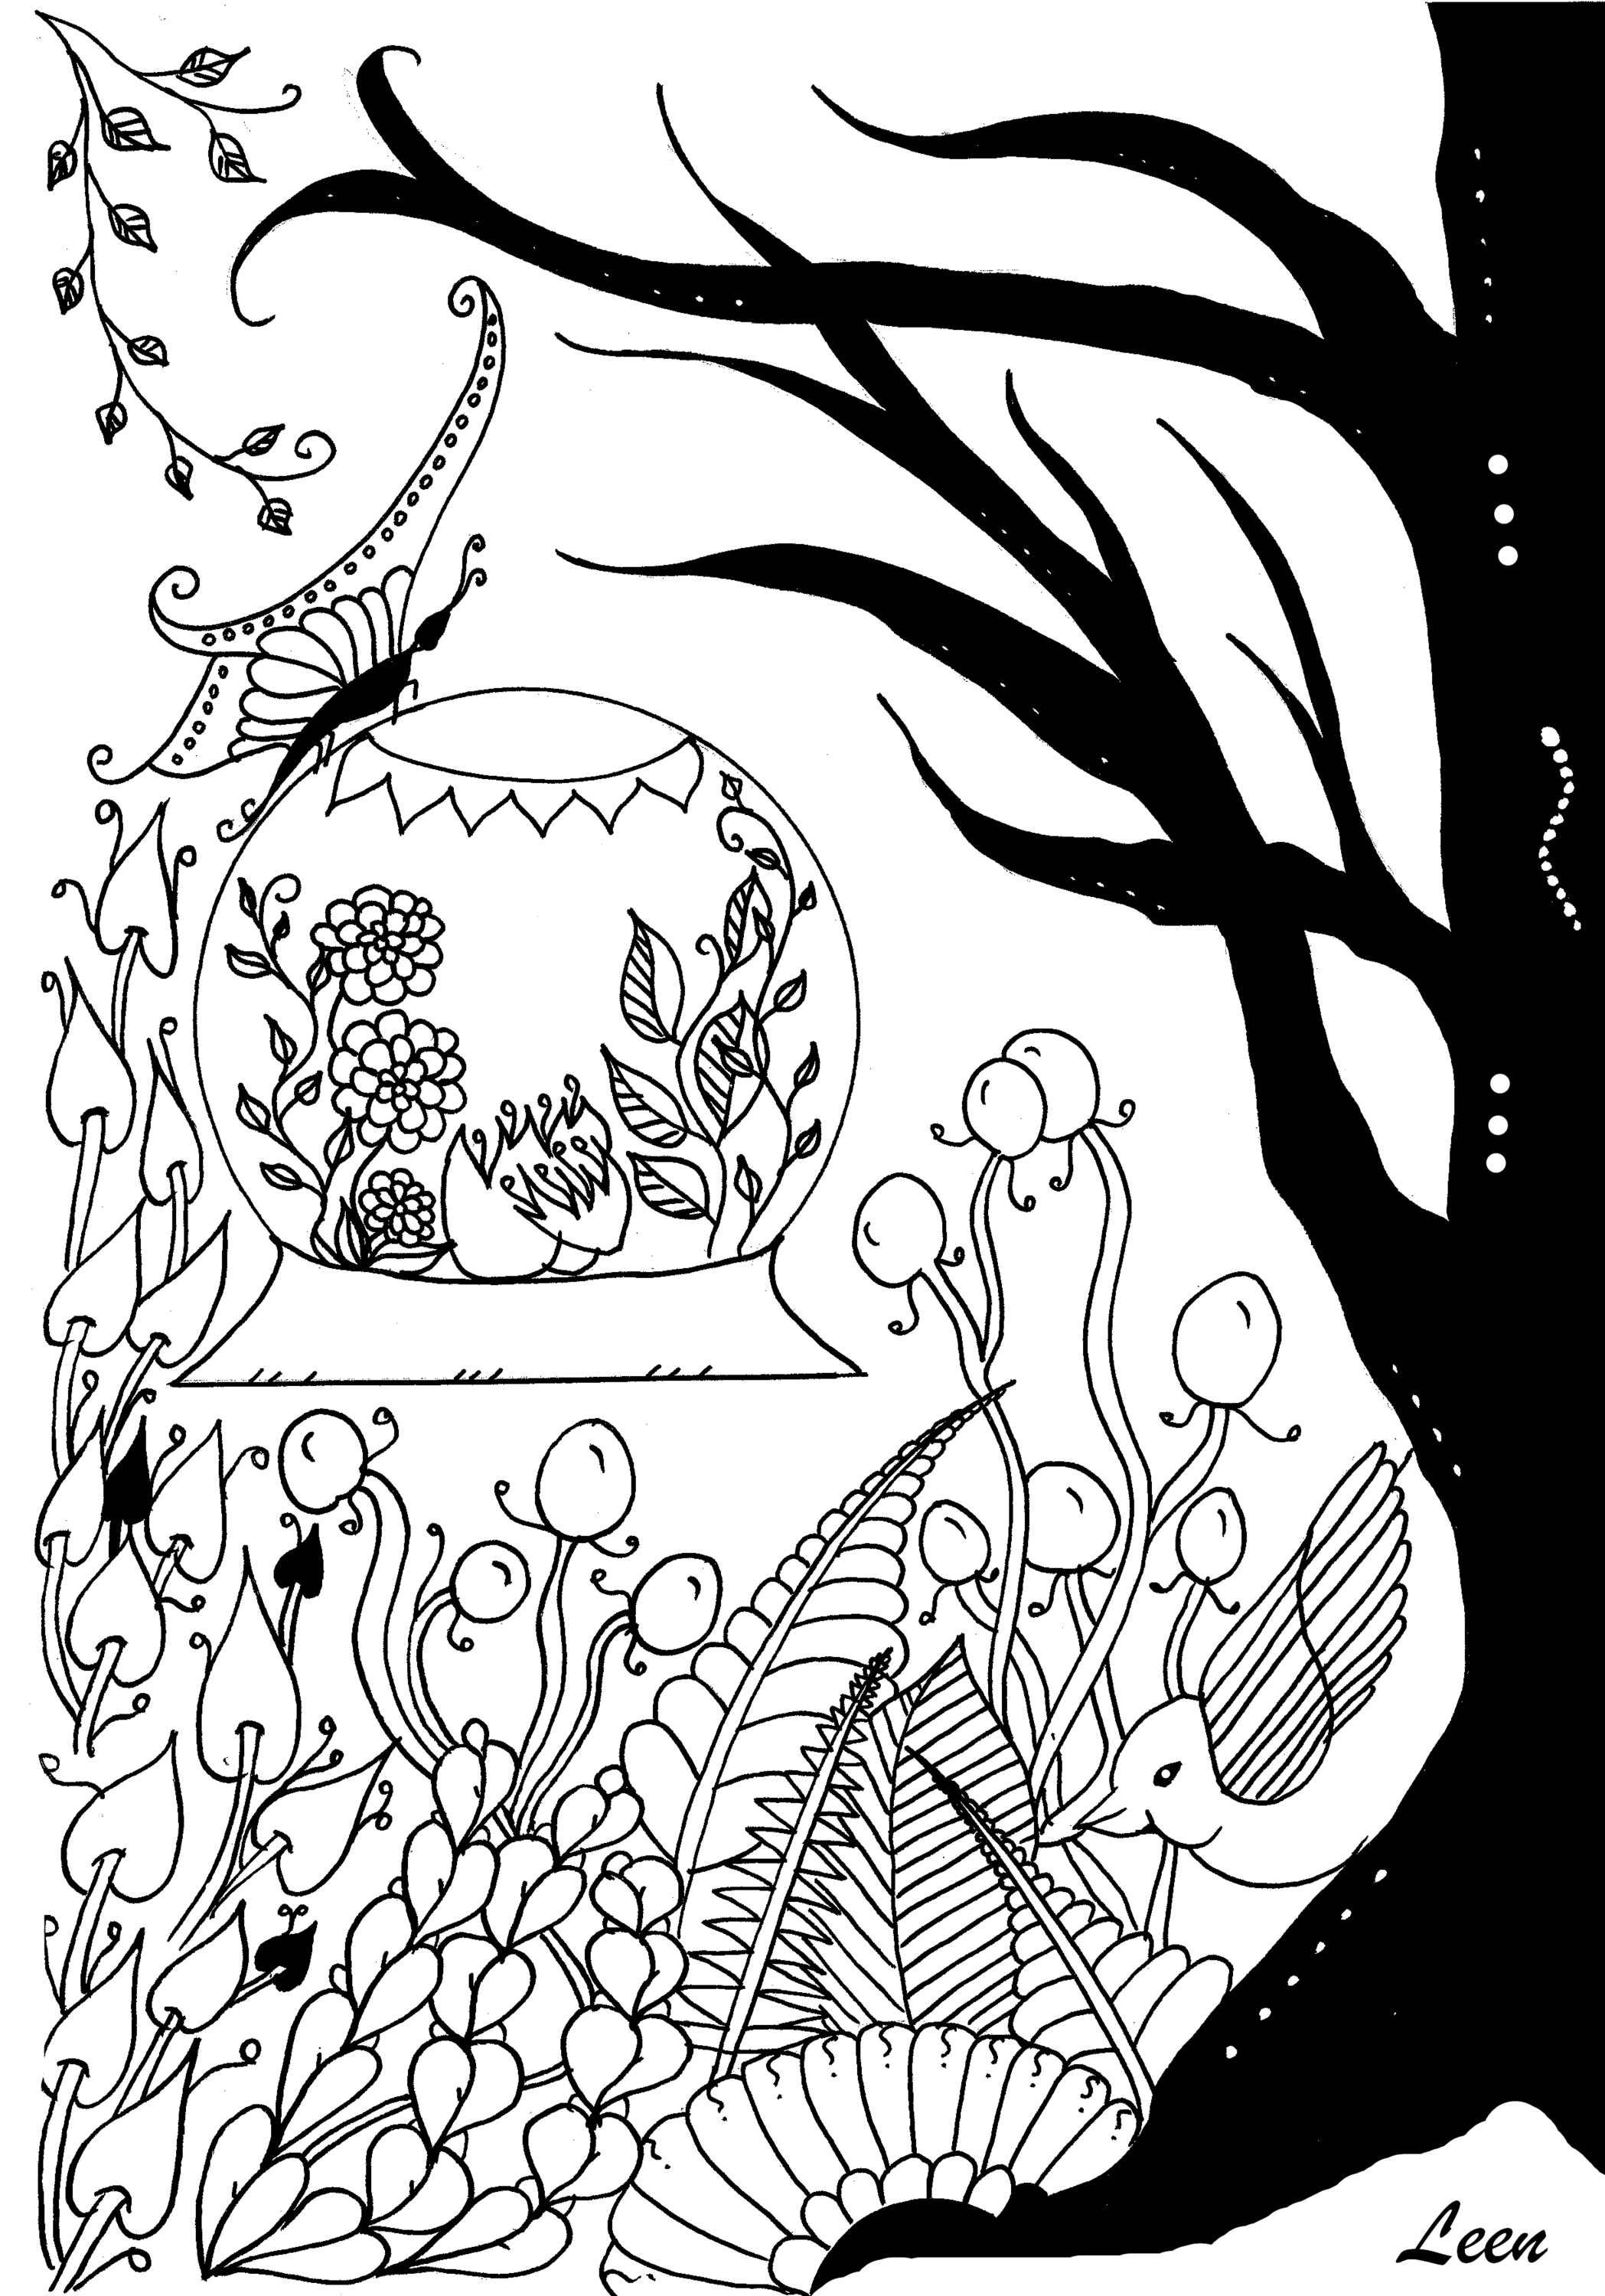 Coloring pages trees and flowers - Flowers And Vegetation Tree From The Gallery Flowers Vegetation